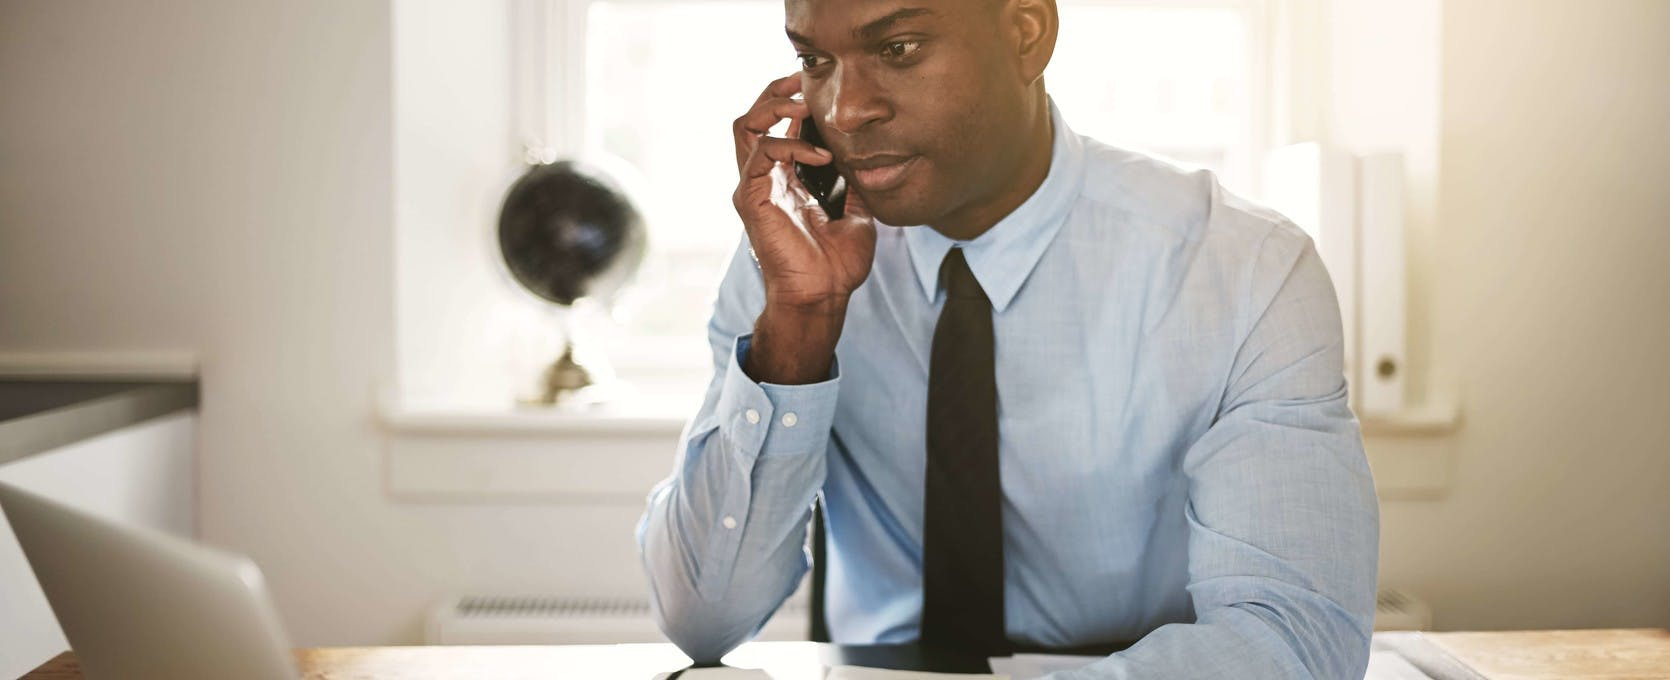 Lawyer on mobile phone in law firm office